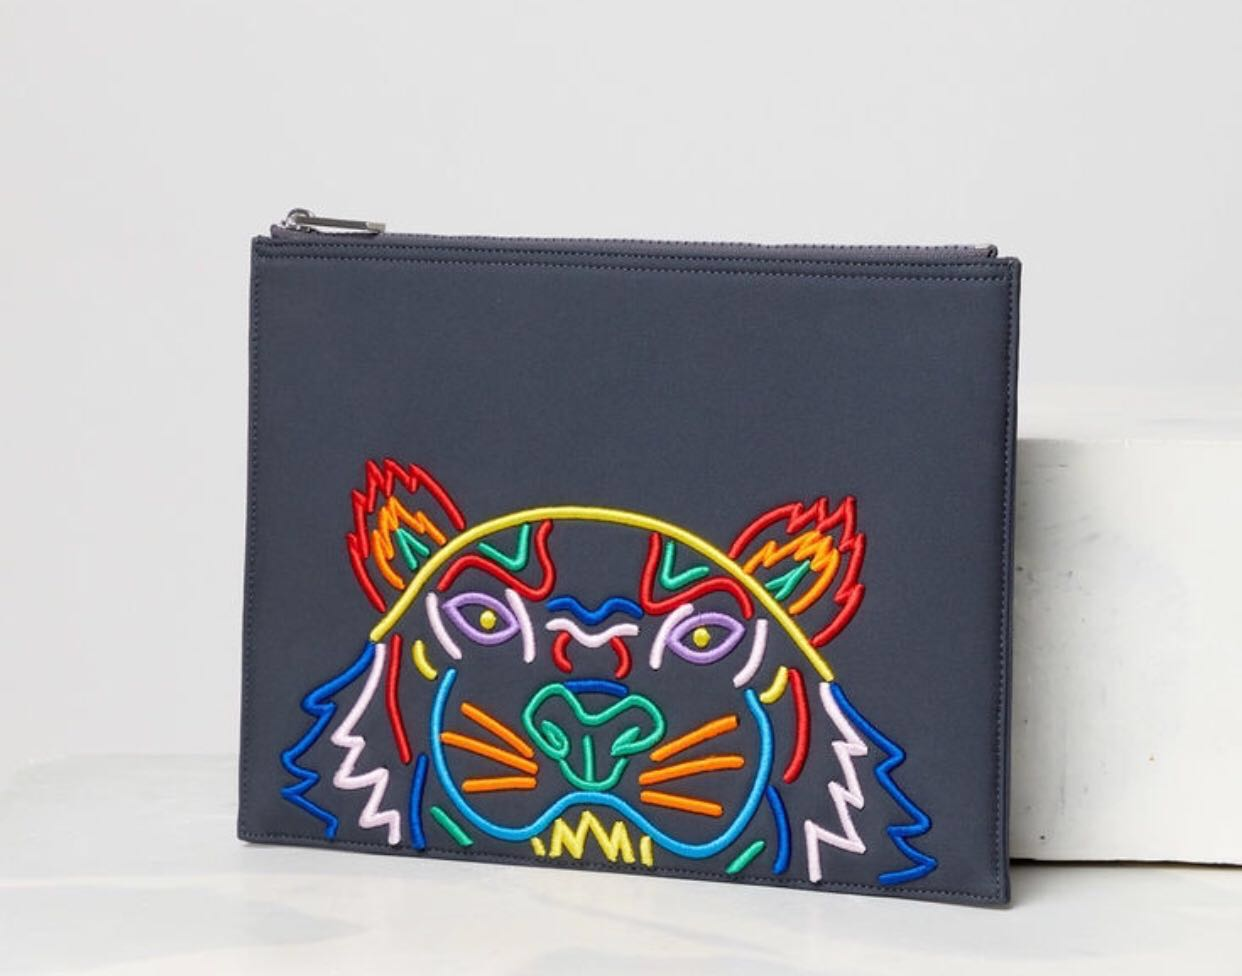 c57af9e399f Ready Stock   Kenzo A4 Tiger neoprene pouch , Luxury, Bags & Wallets,  Clutches on Carousell